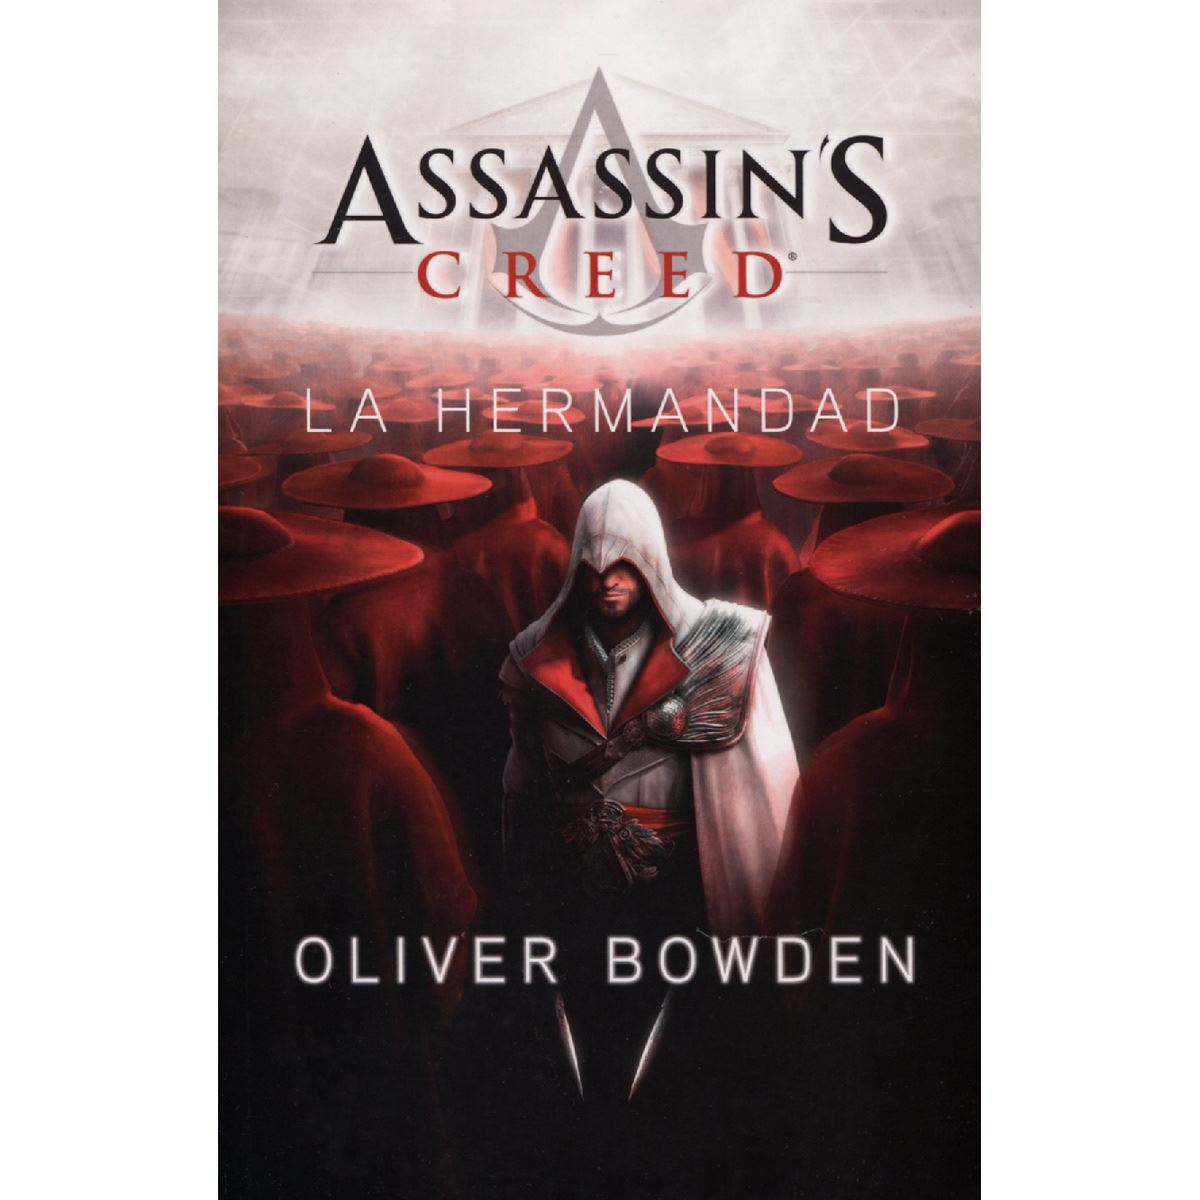 La hermandad. assassins creed Libro - Sanborns